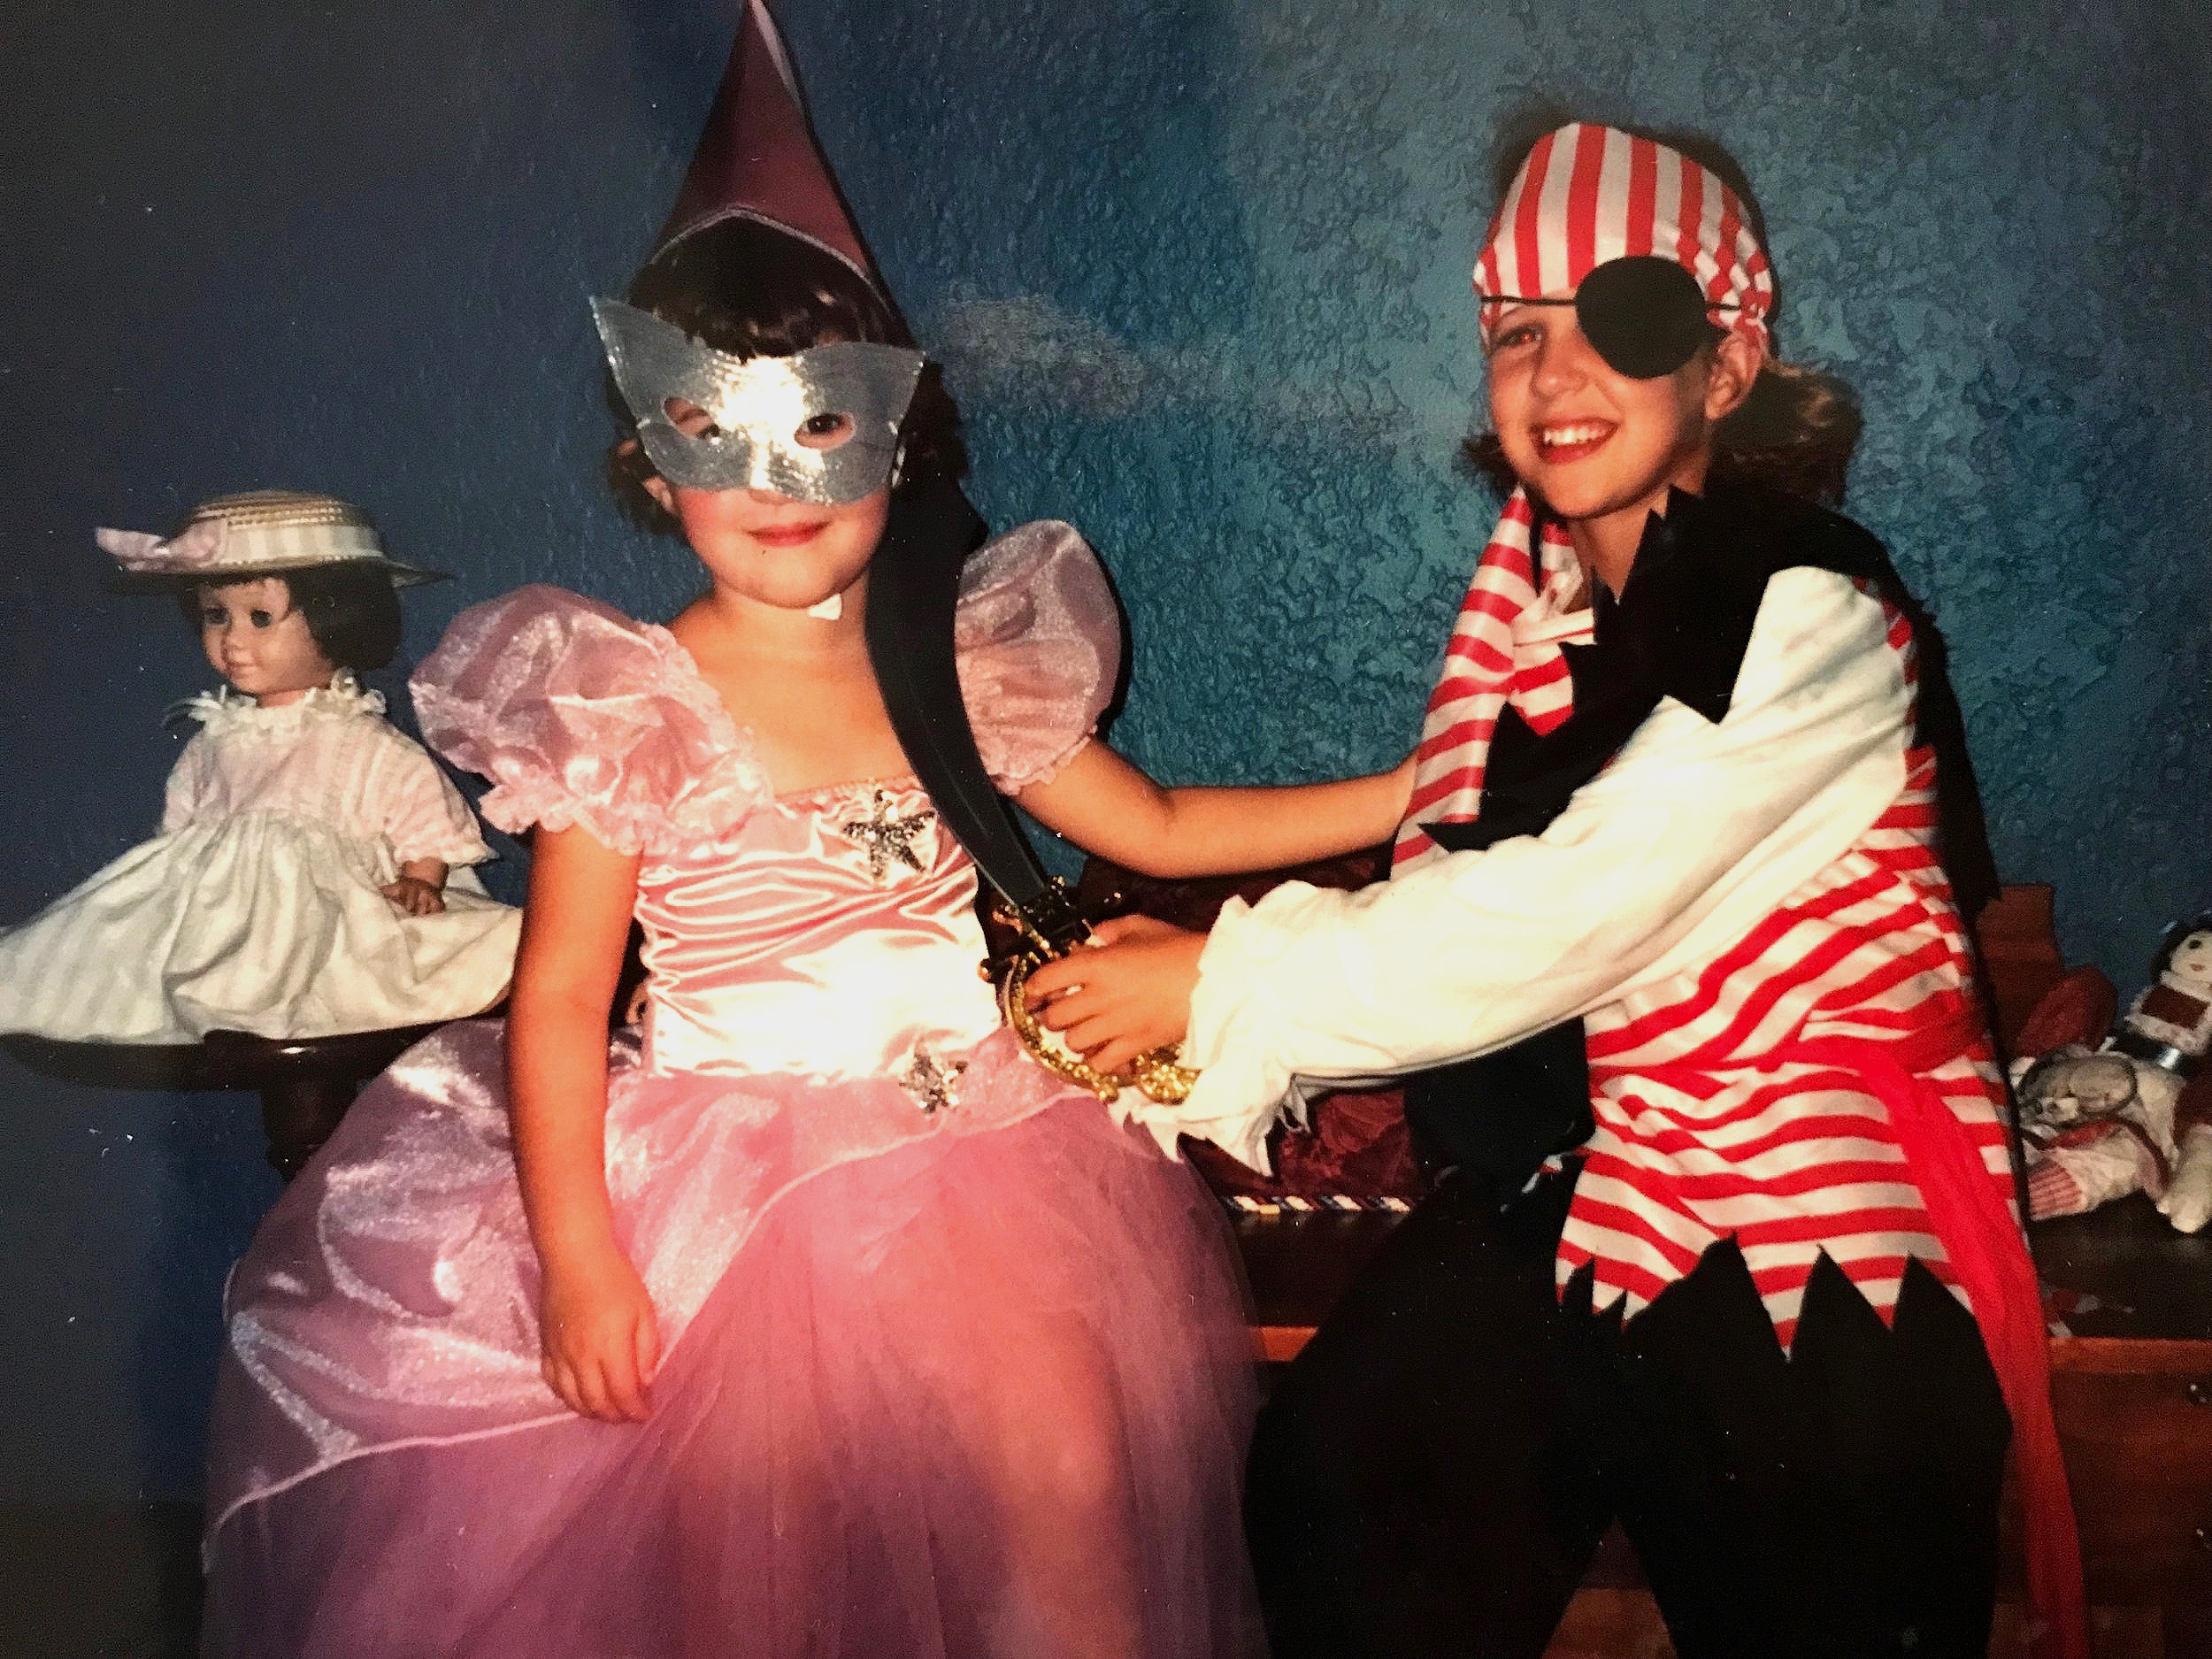 Meg (left) as a fairy princess. MK (right) as a pirate killing a fairy princess.